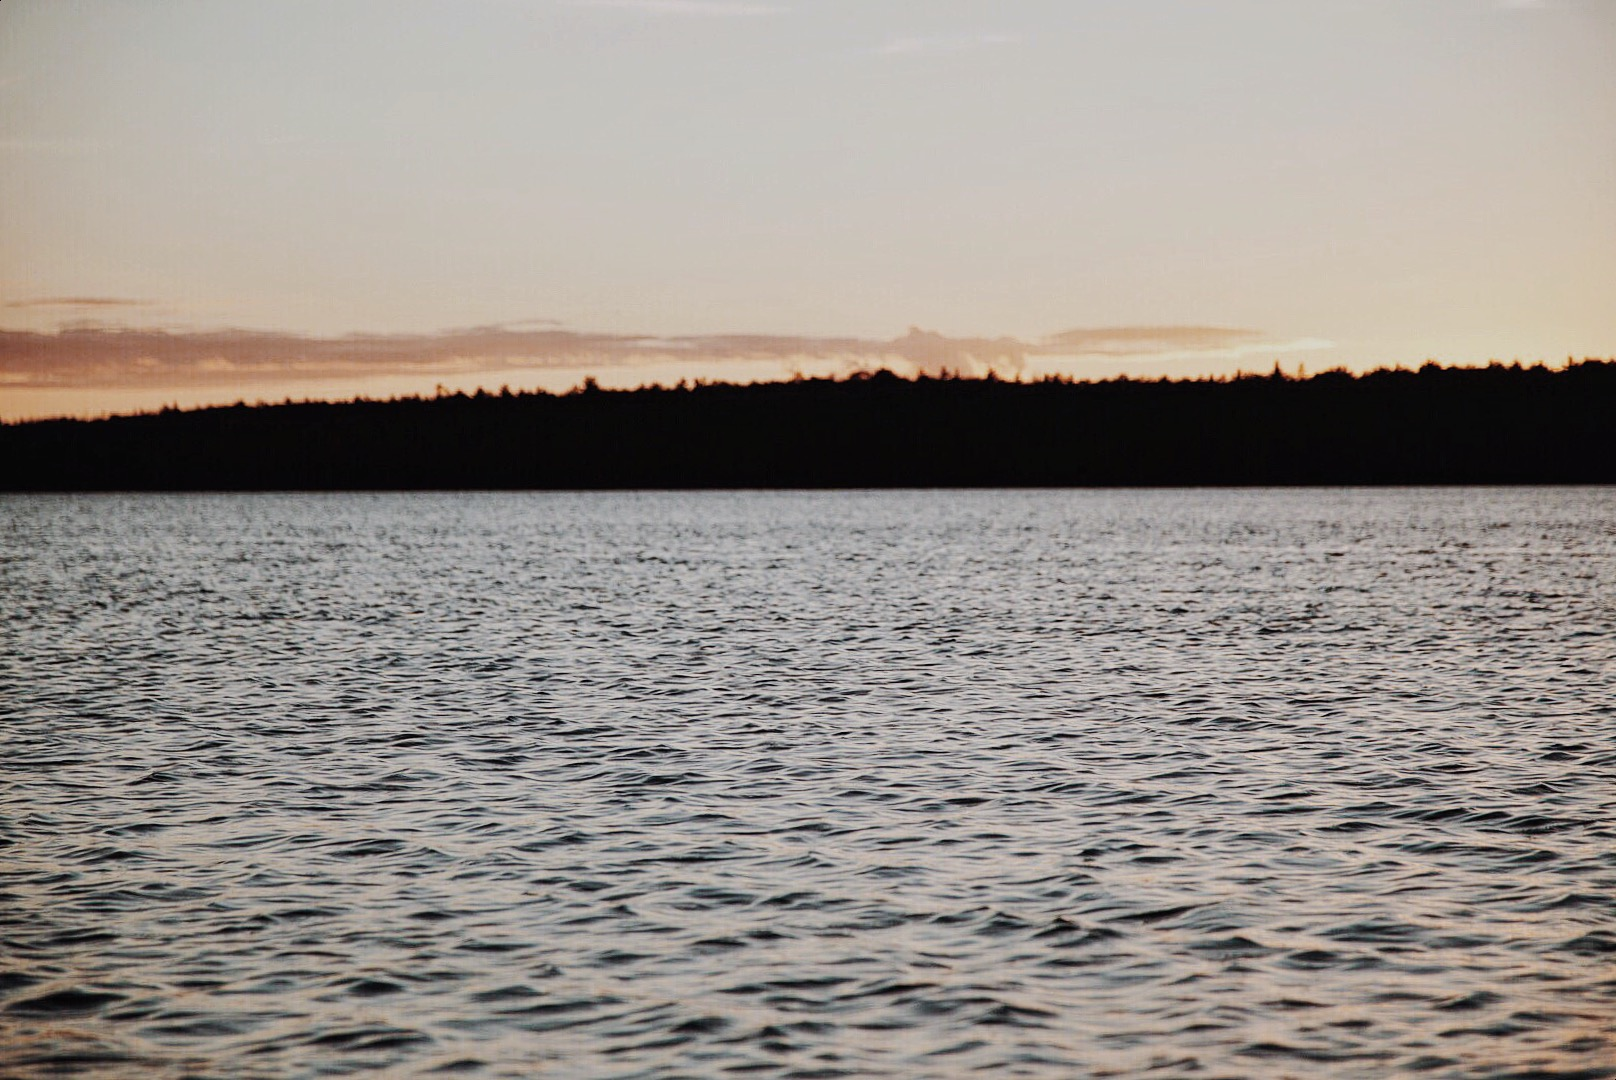 Camping in the Bruce Peninsula in Northern Ontario